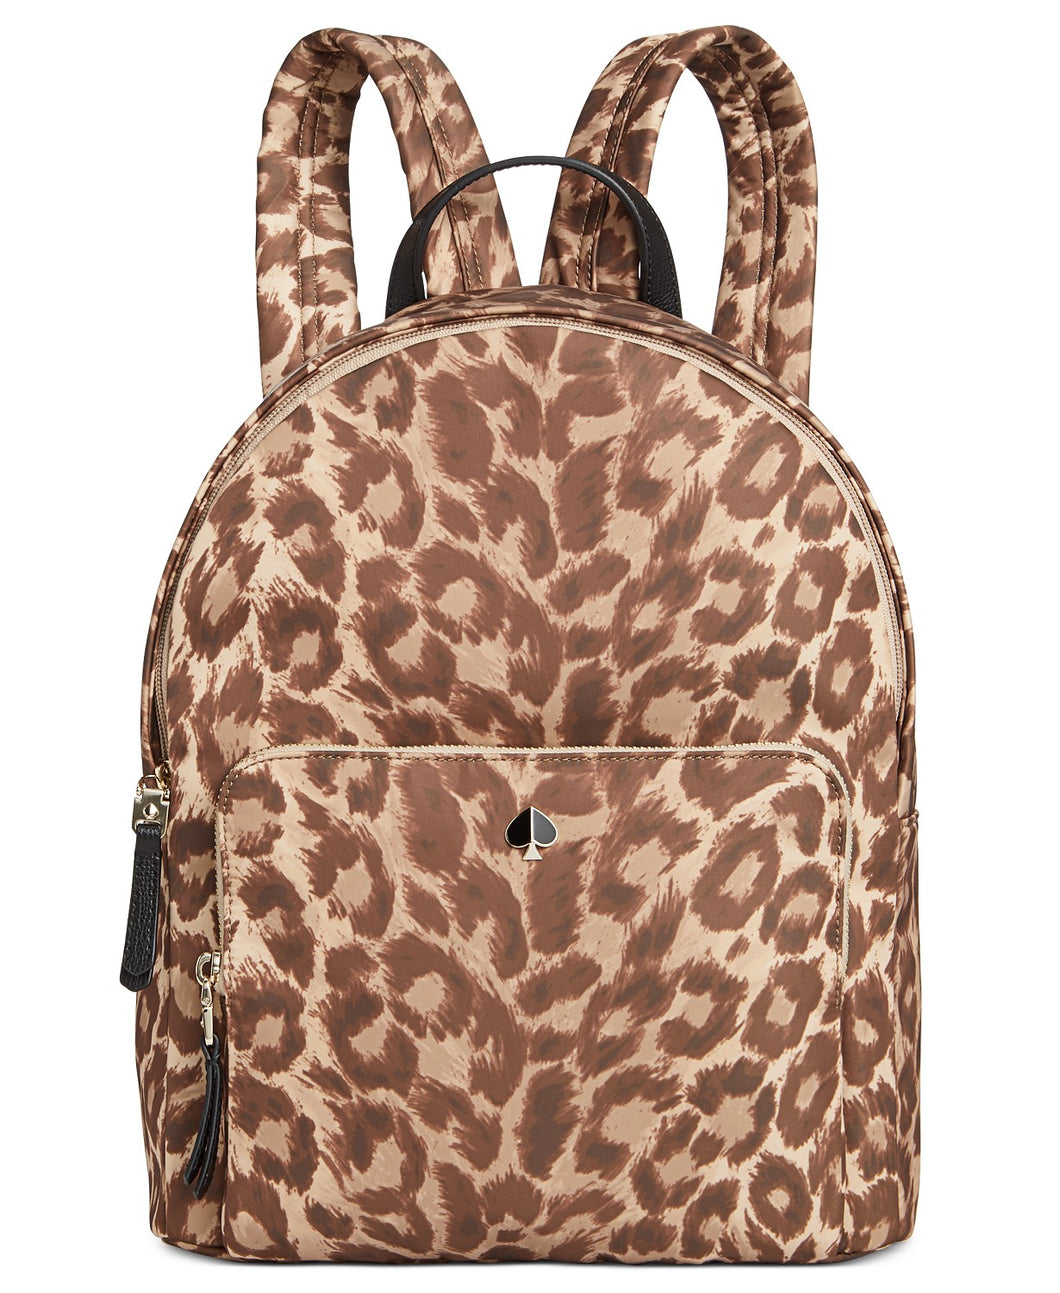 Kate Spade New York Taylor Leopard Backpack